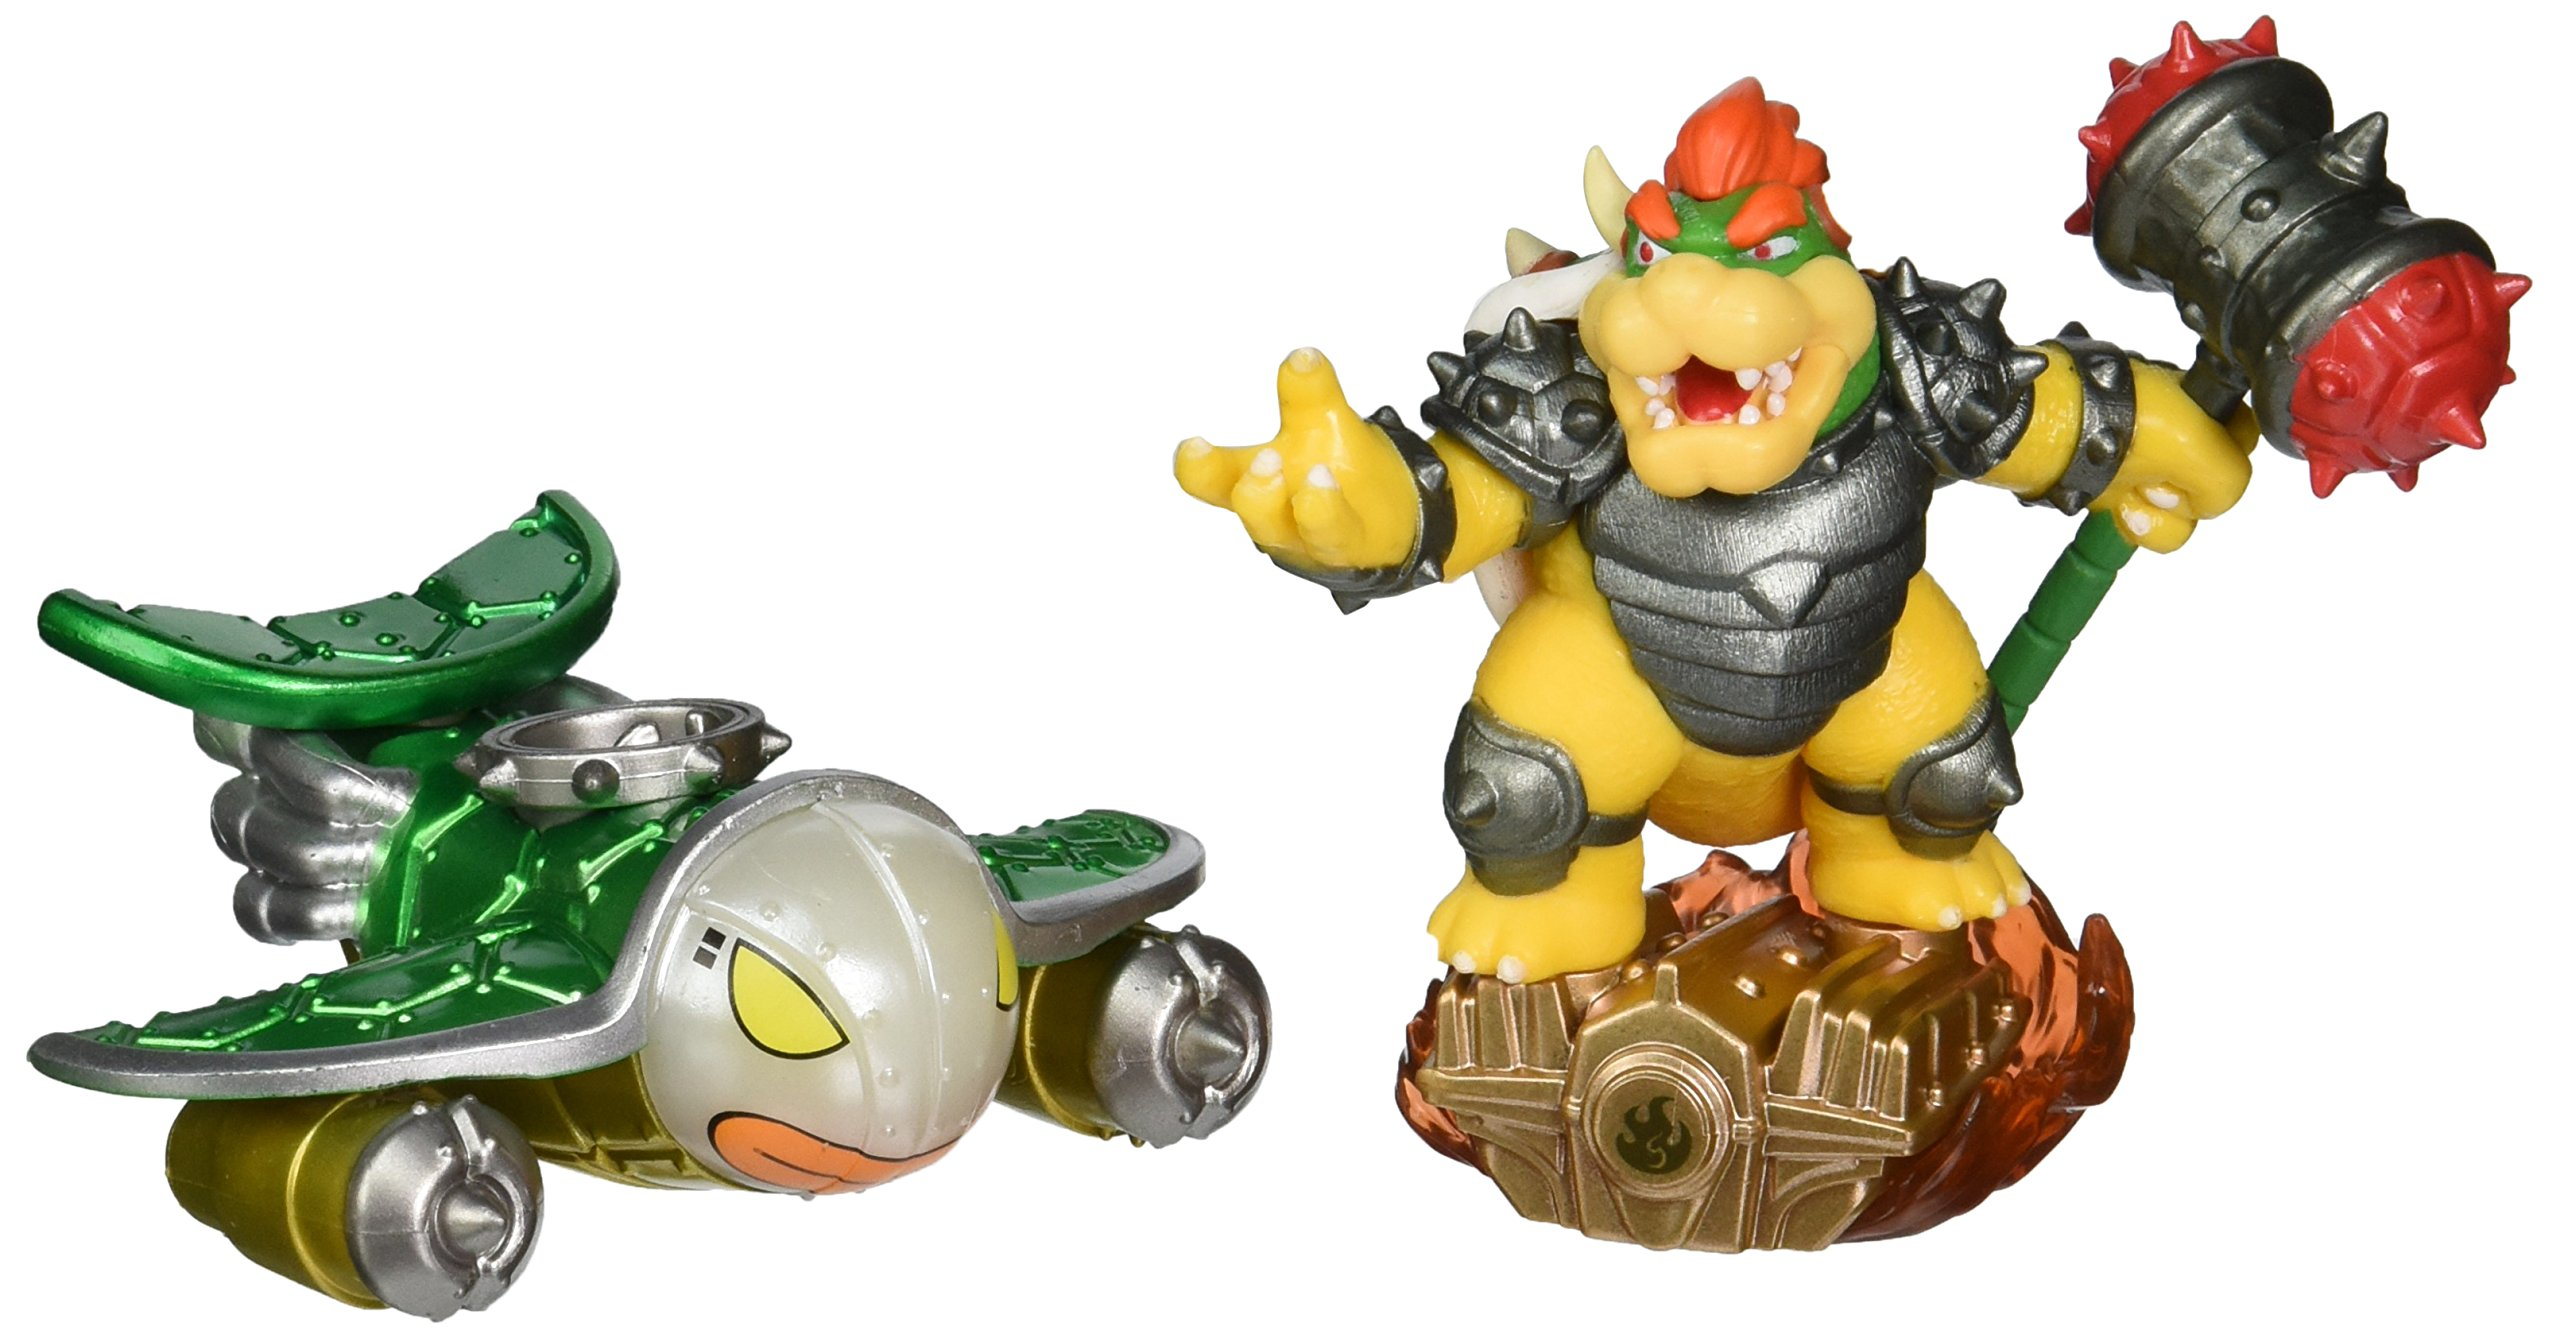 Skylanders Superchargers Supercharged Combo Pack: Bowser and Clown Cruiser - Nintendo